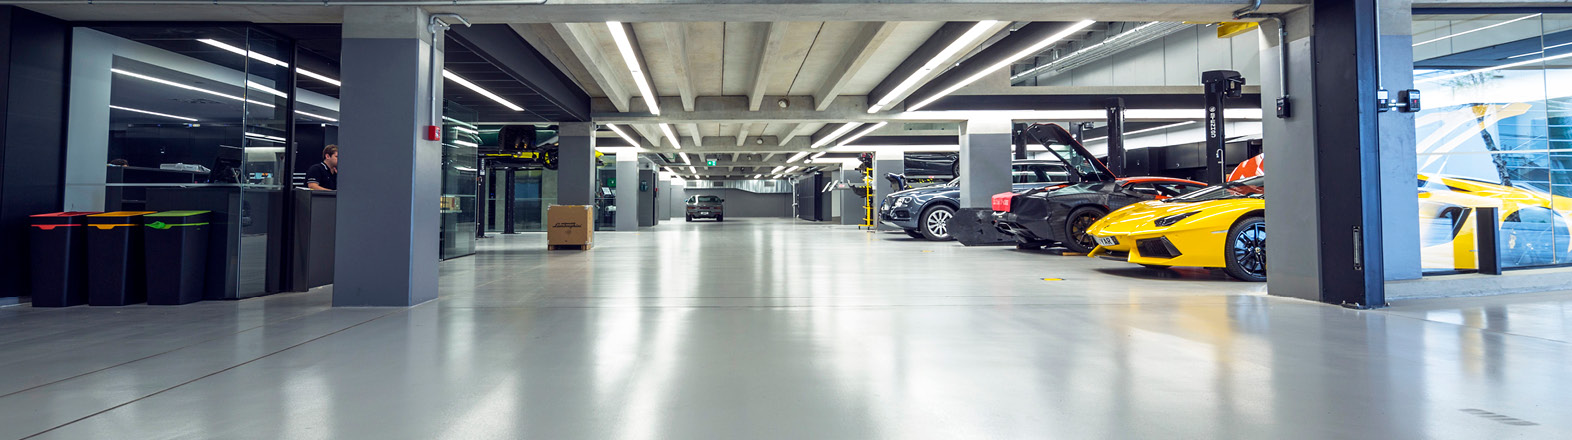 Tough Flooring for the Automotive Sector